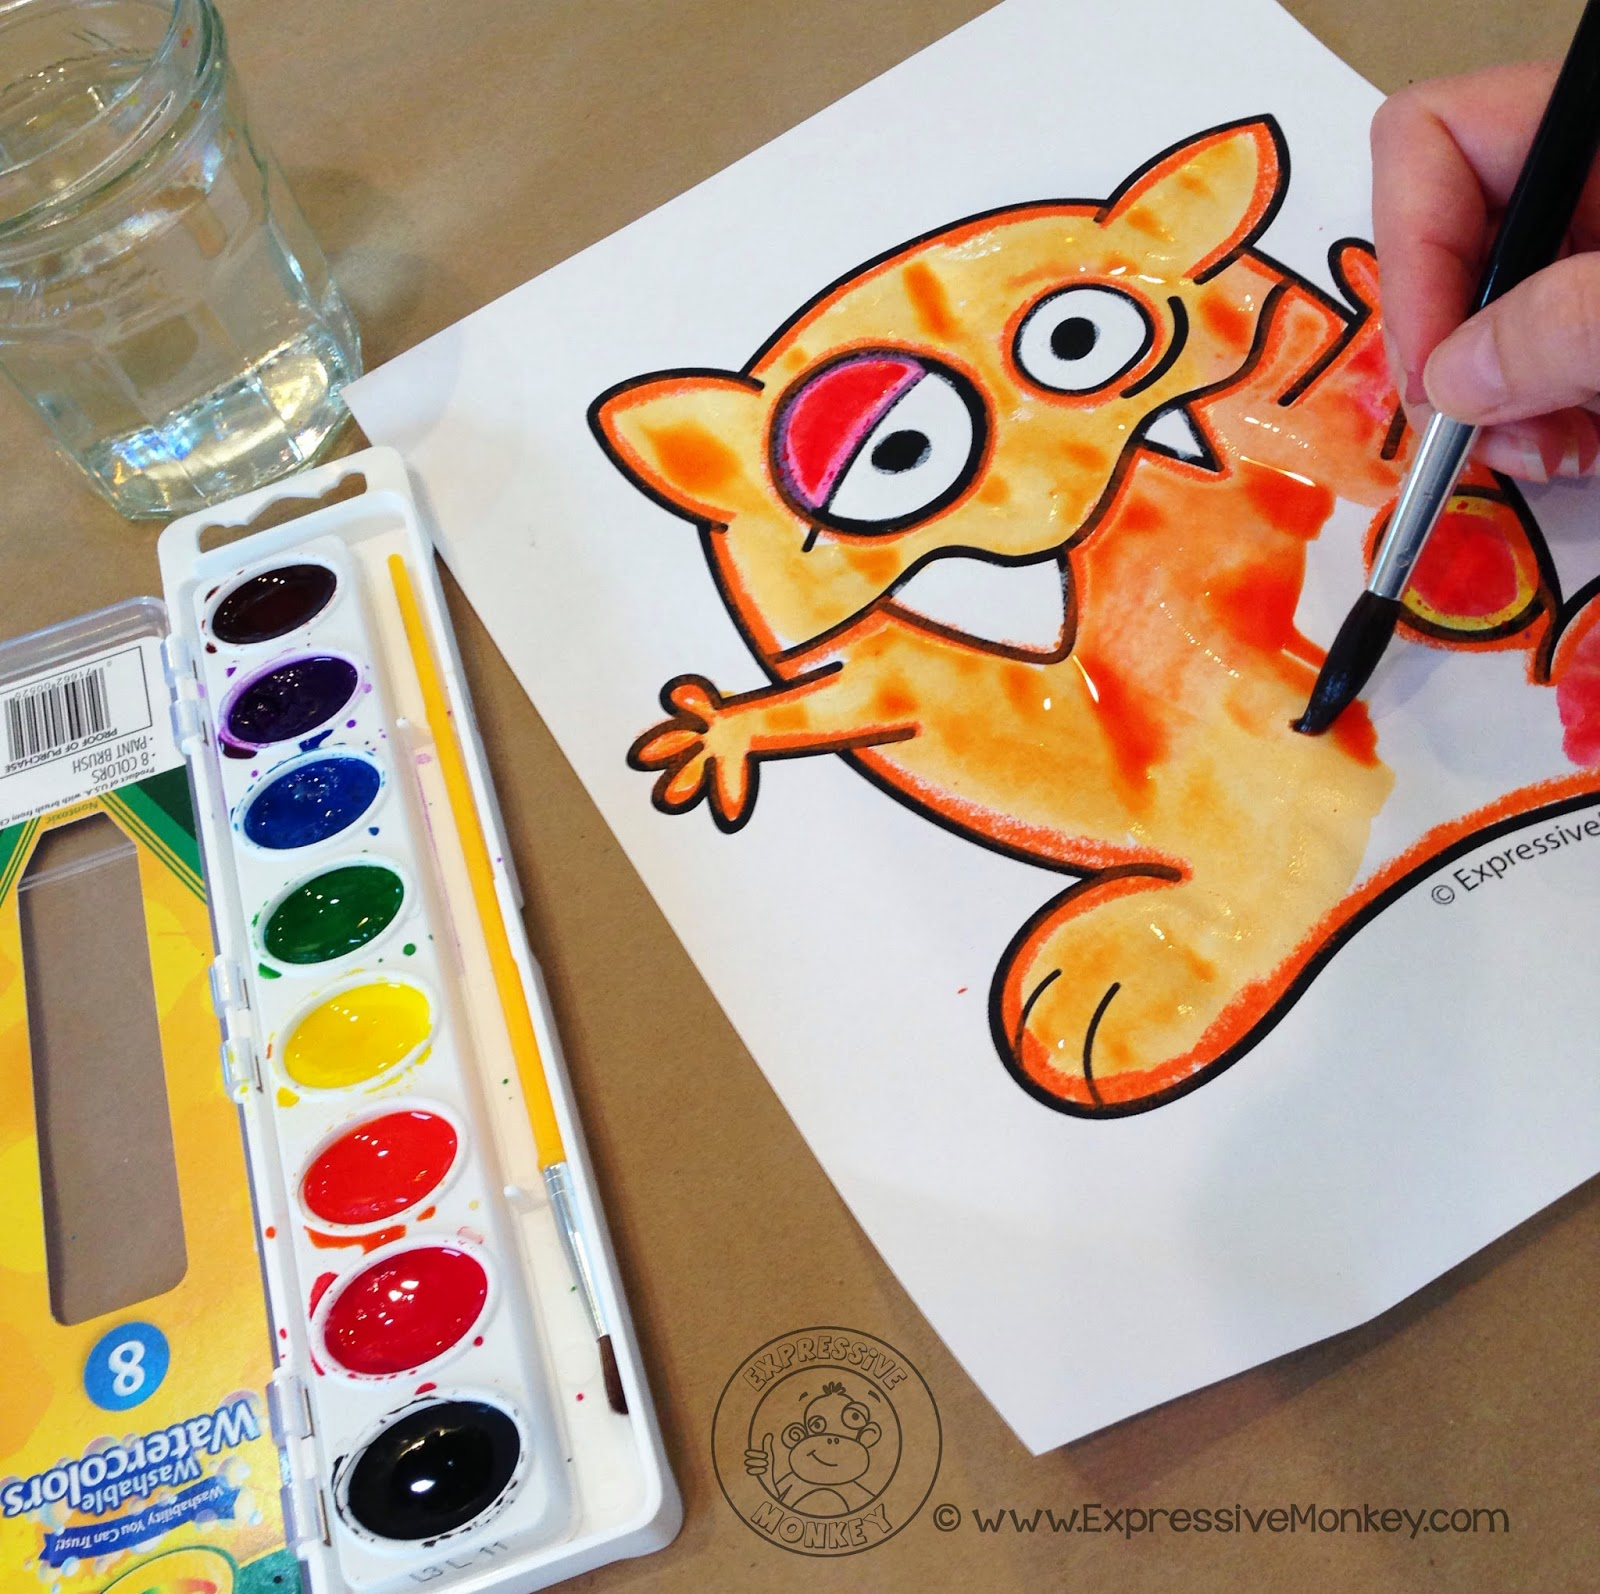 Expressive Monkey demonstrates how to use watercolors, oil pastels, and plastic wrap to create a fun texture on a monster drawing.